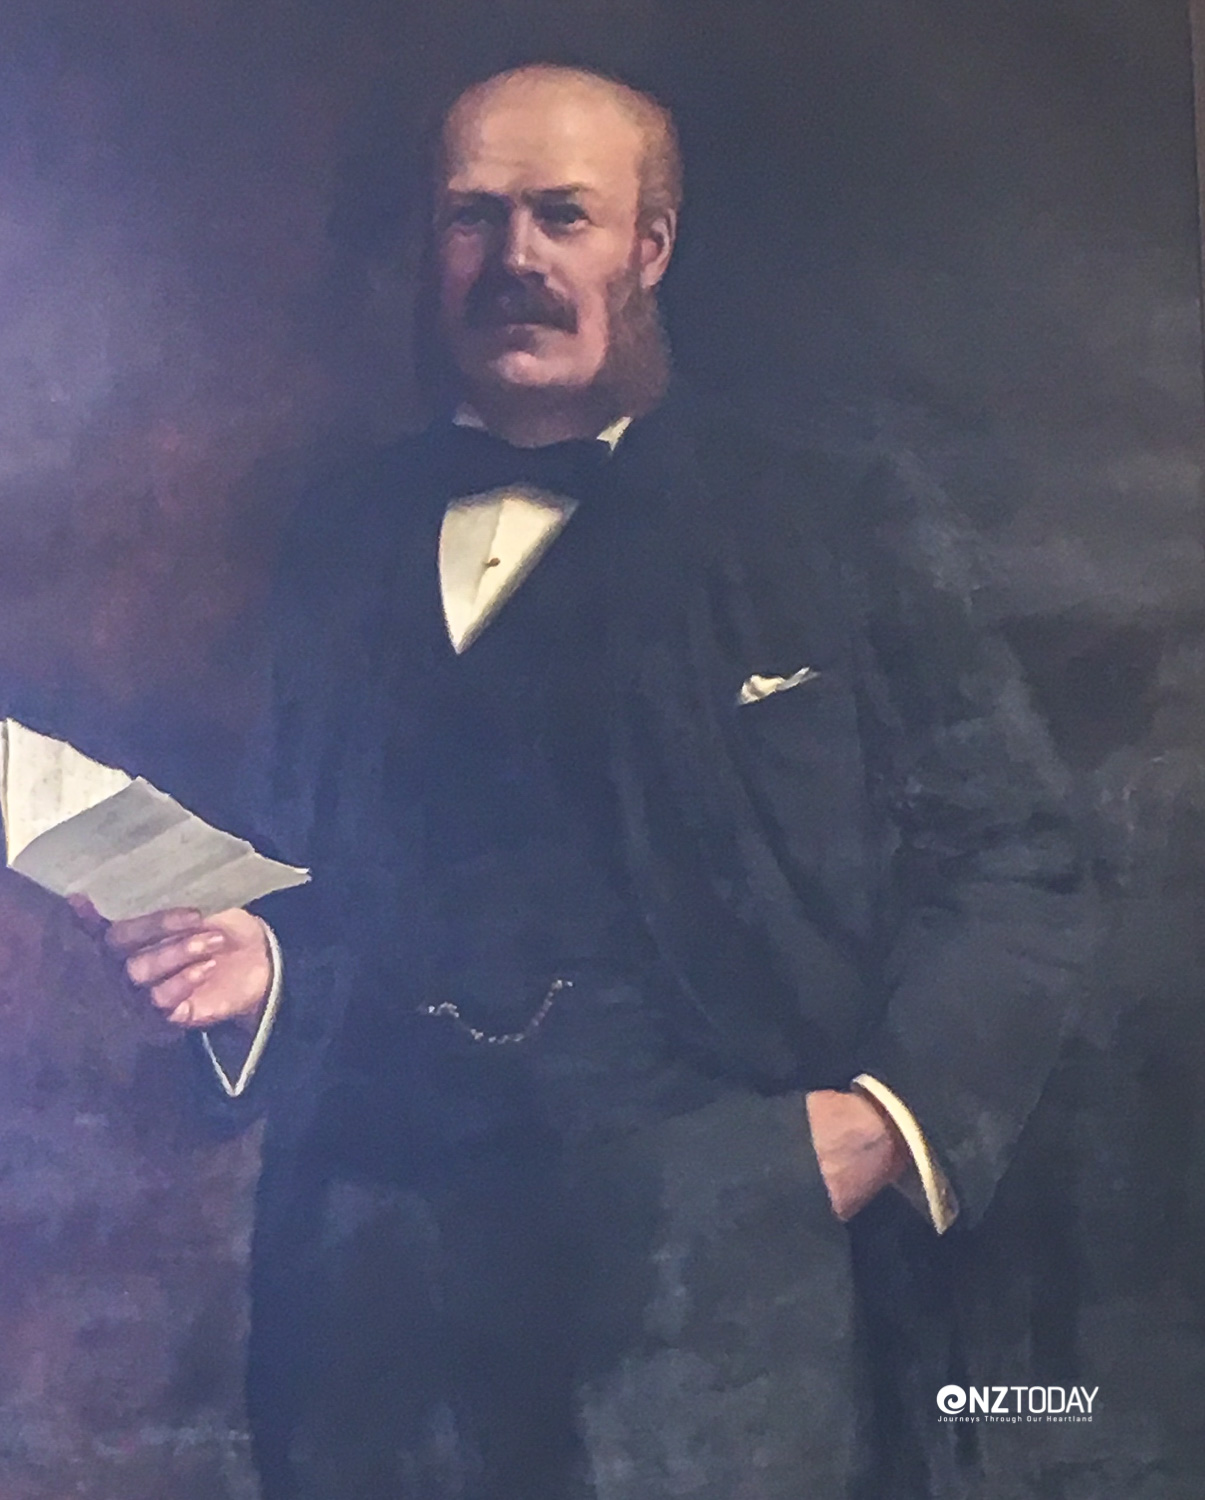 William Leys - who bequeathed the Leys Institute